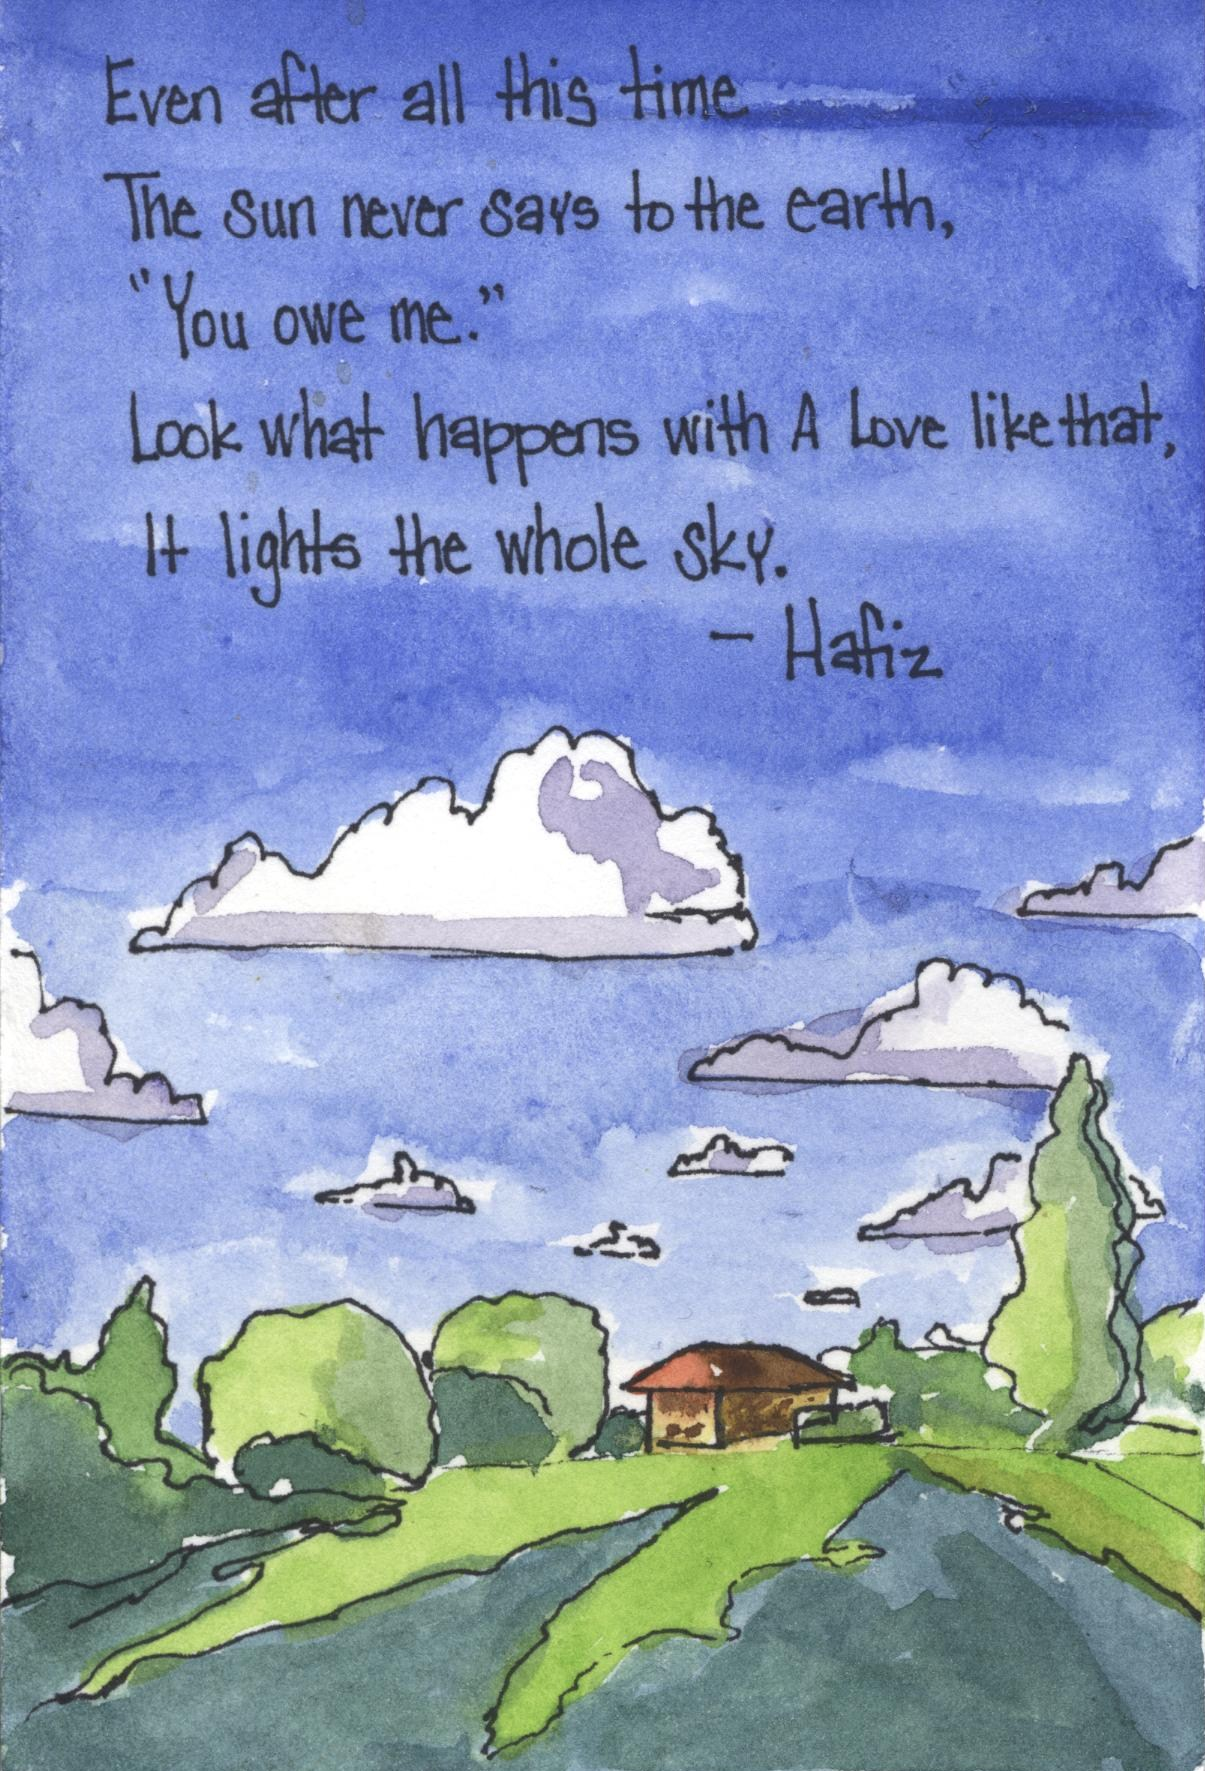 hafiz quotes sun - photo #27